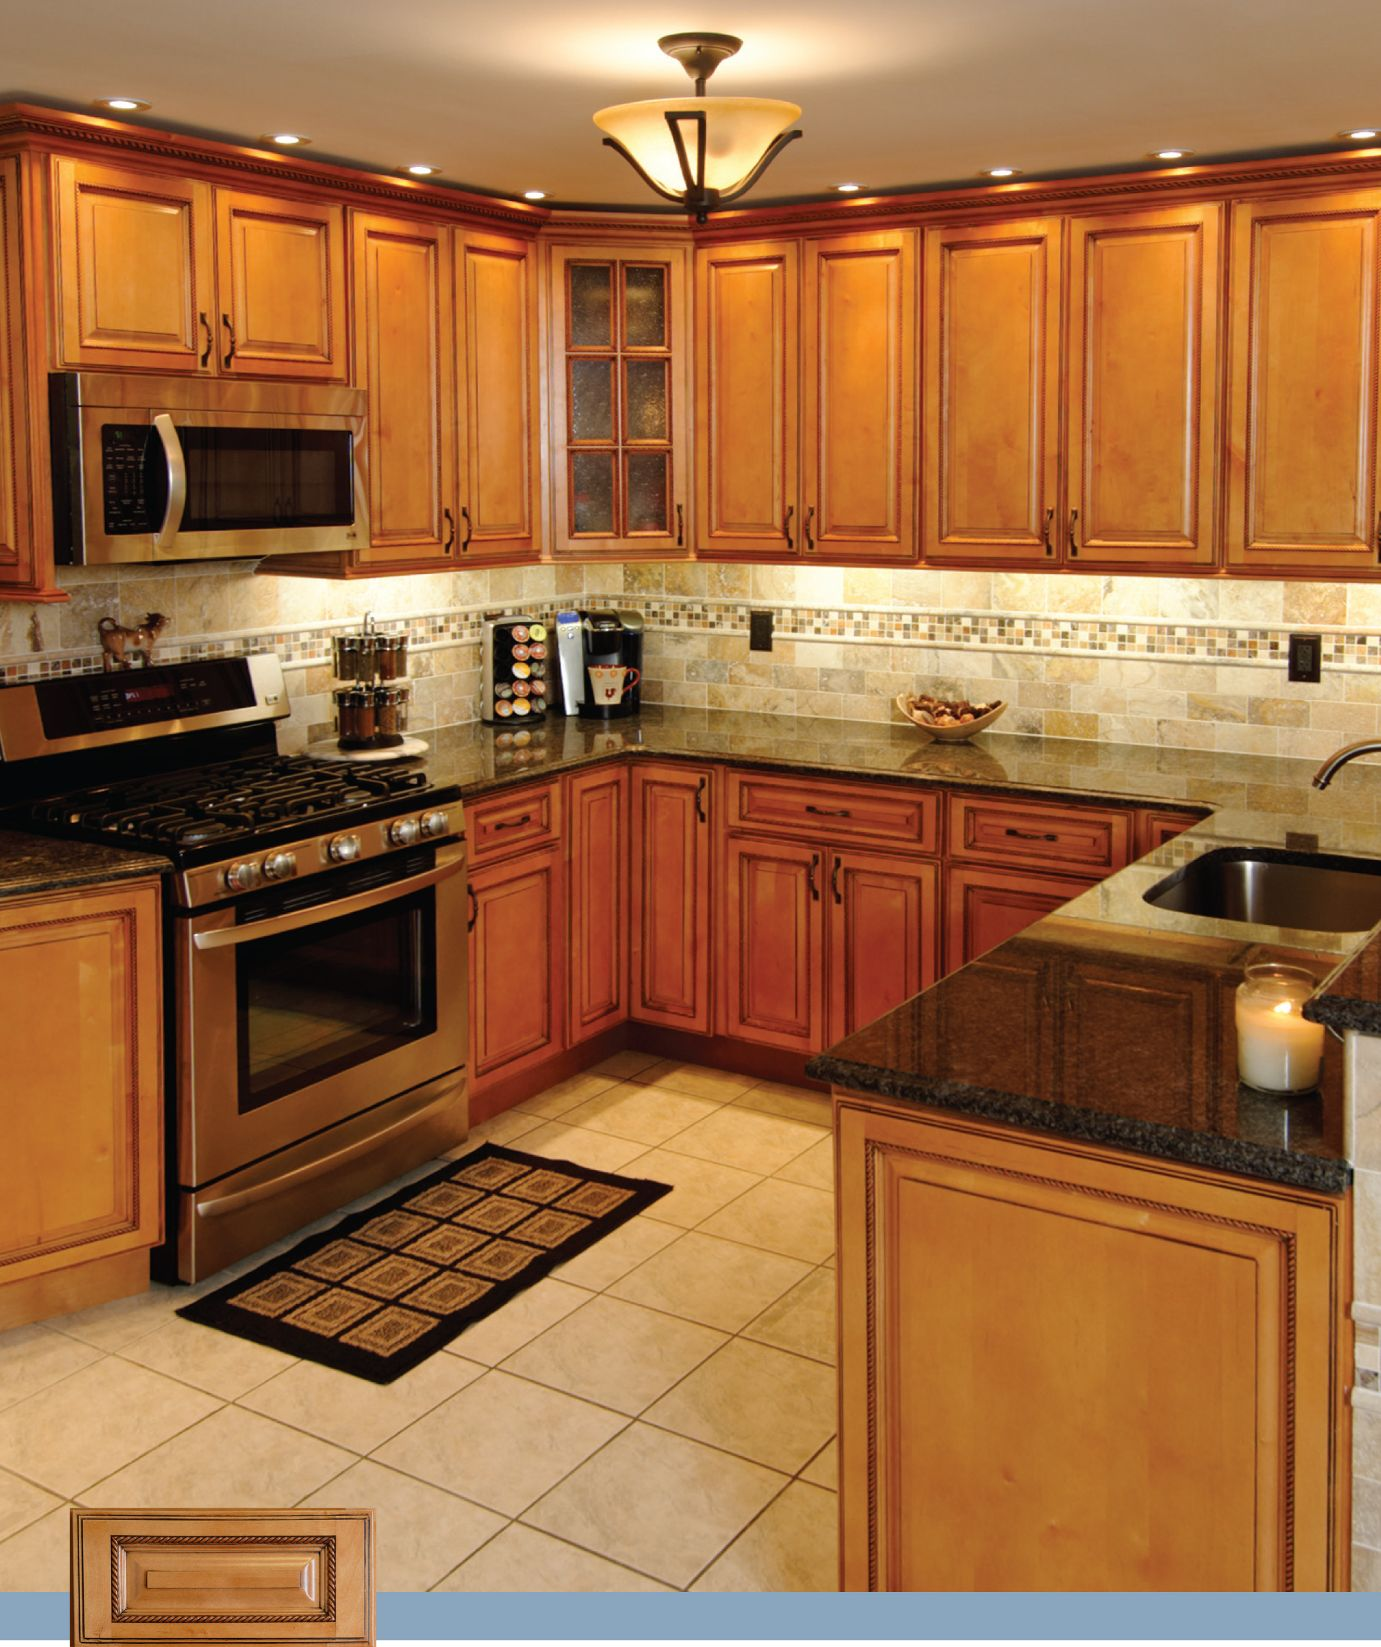 Update Kitchen Maple Cabinets Images Of Maple Cabinet Kitchens Best Home Decoration